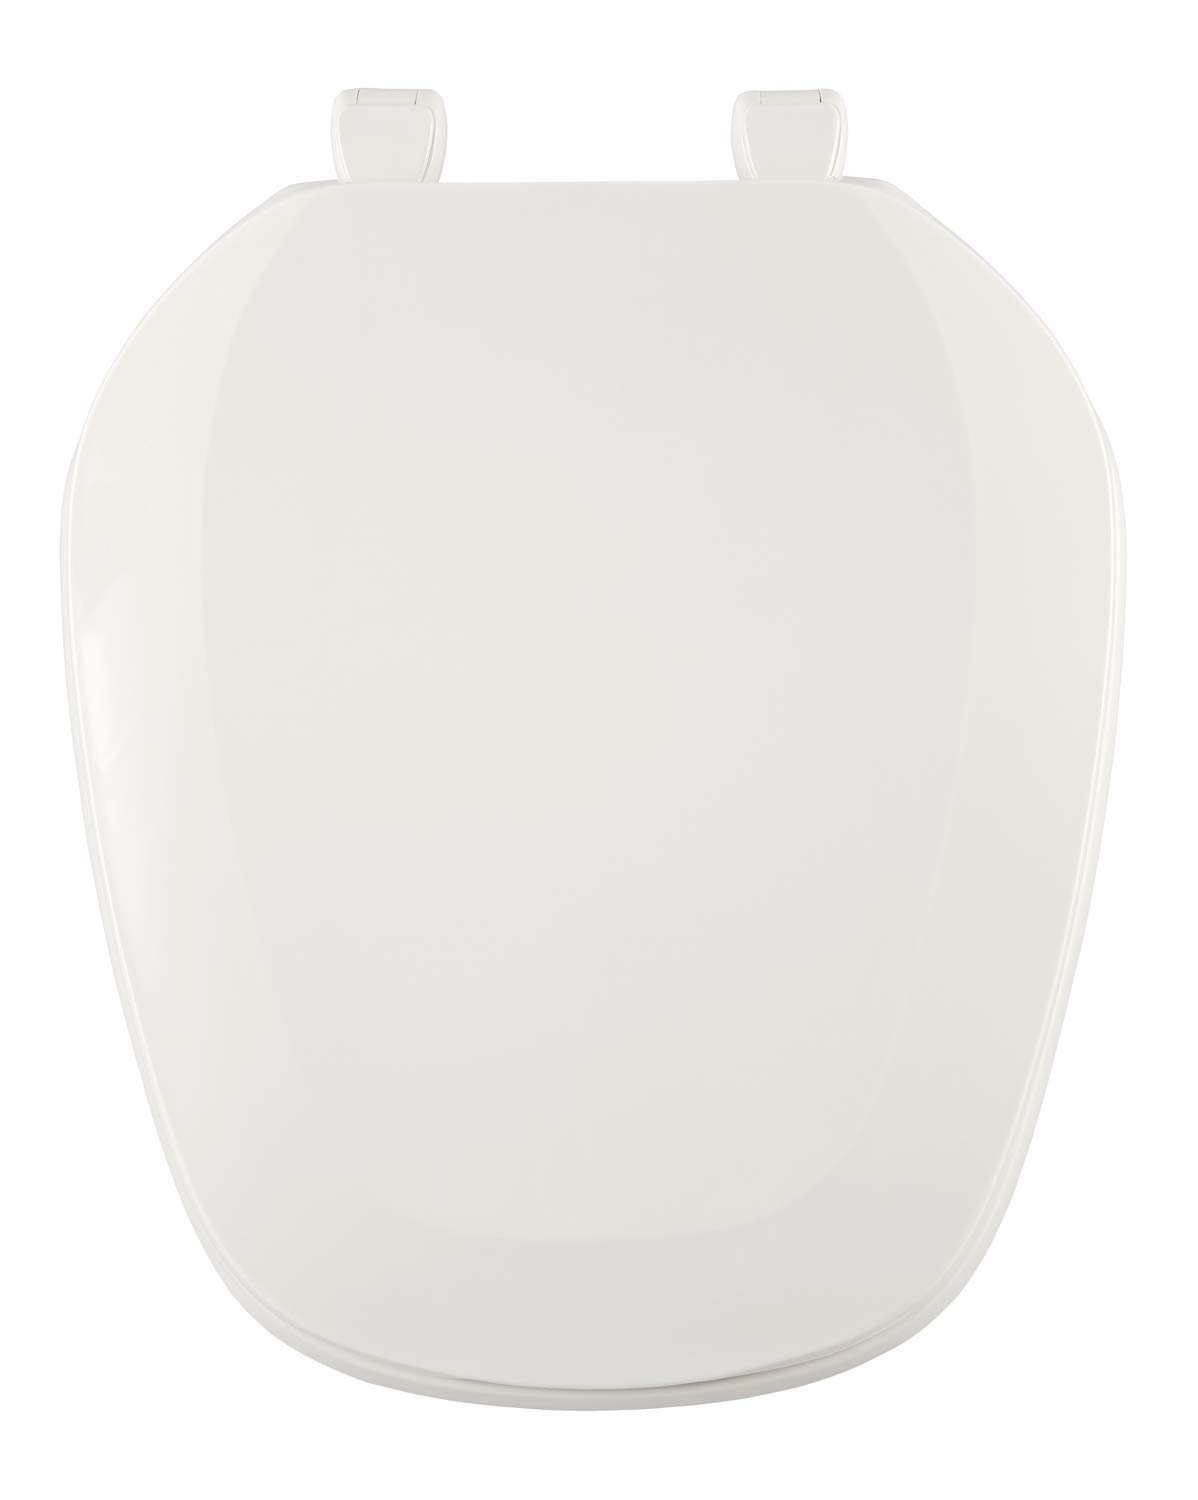 Centoco EMB201-001 Eljer Emblem Round Toilet Seat with Square Front, White by Centoco